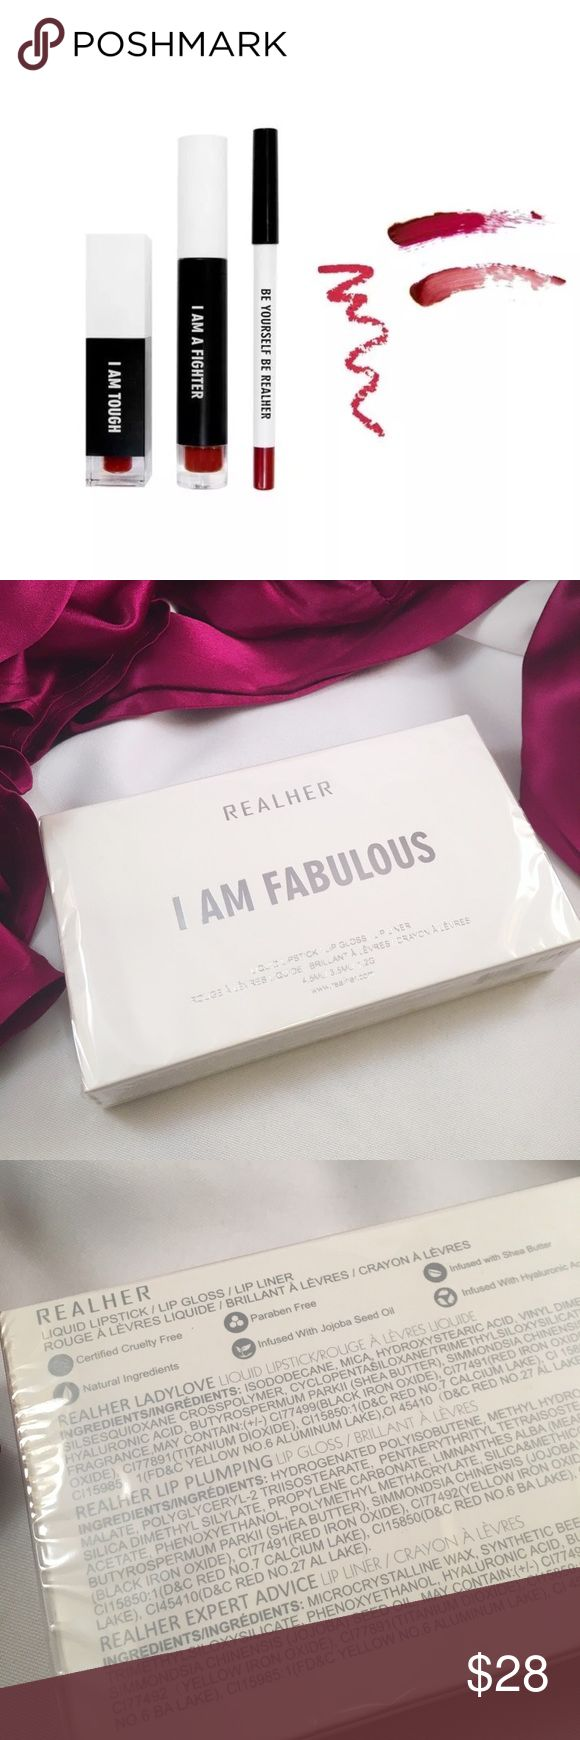 """REALHER """"I am Fabulous"""" Lip Kit: Deep Red Brand new sealed package. Lip kit includes a liquid lipstick, lip gloss and lip liner🌹🎈🍎 All in beautiful rich shades of red. PARABEN FREE👍🏽 CRUELTY FREE👍🏽 NATURAL INGREDIENTS 👍🏽 Realher Makeup Lipstick"""